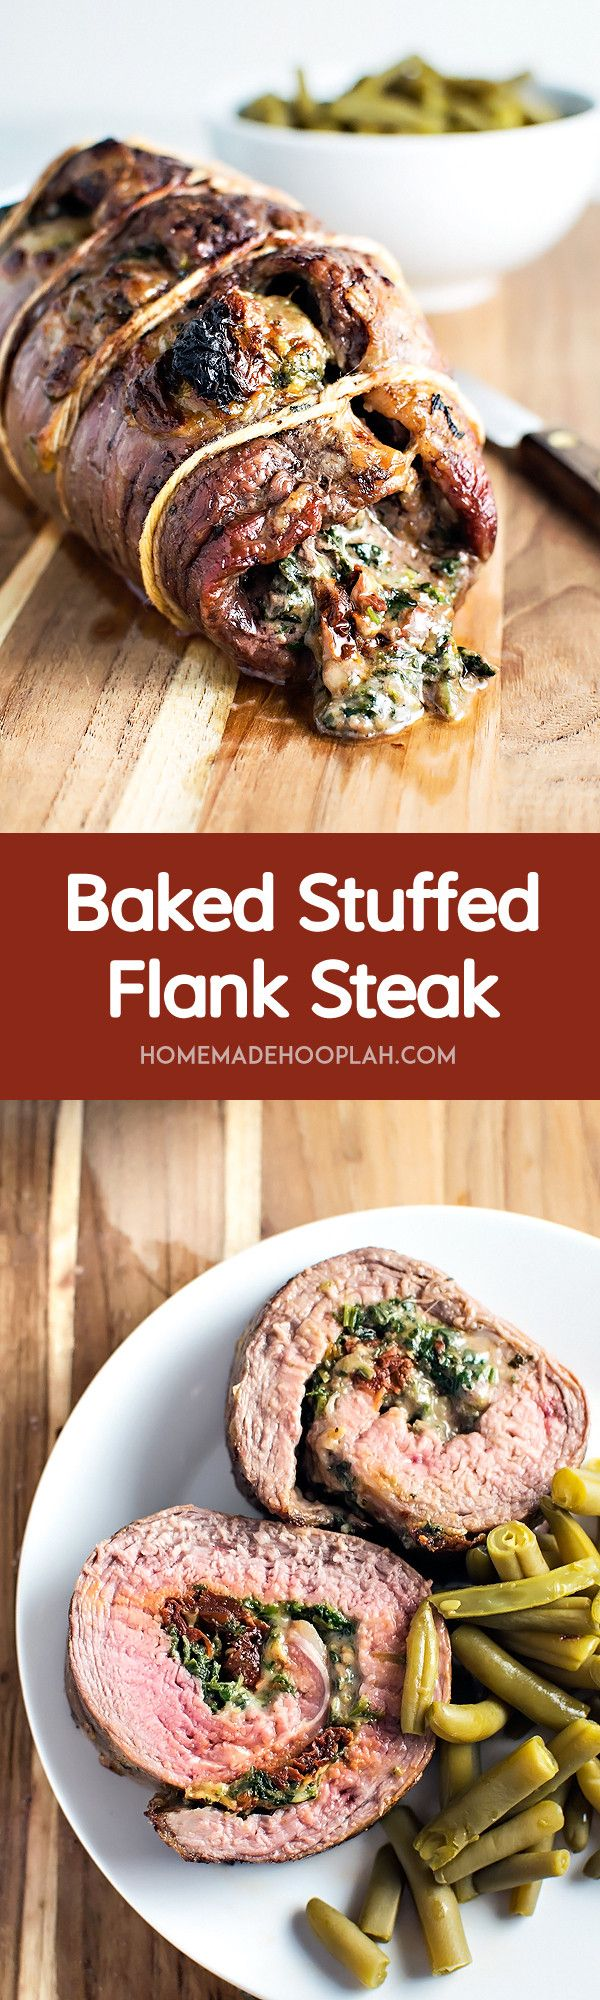 Baked Stuffed Flank Steak! Spice up your boring steak dinner by baking a fine cut of meat with spinach, mozzarella, and sun dried tomatoes.   HomemadeHooplah.com